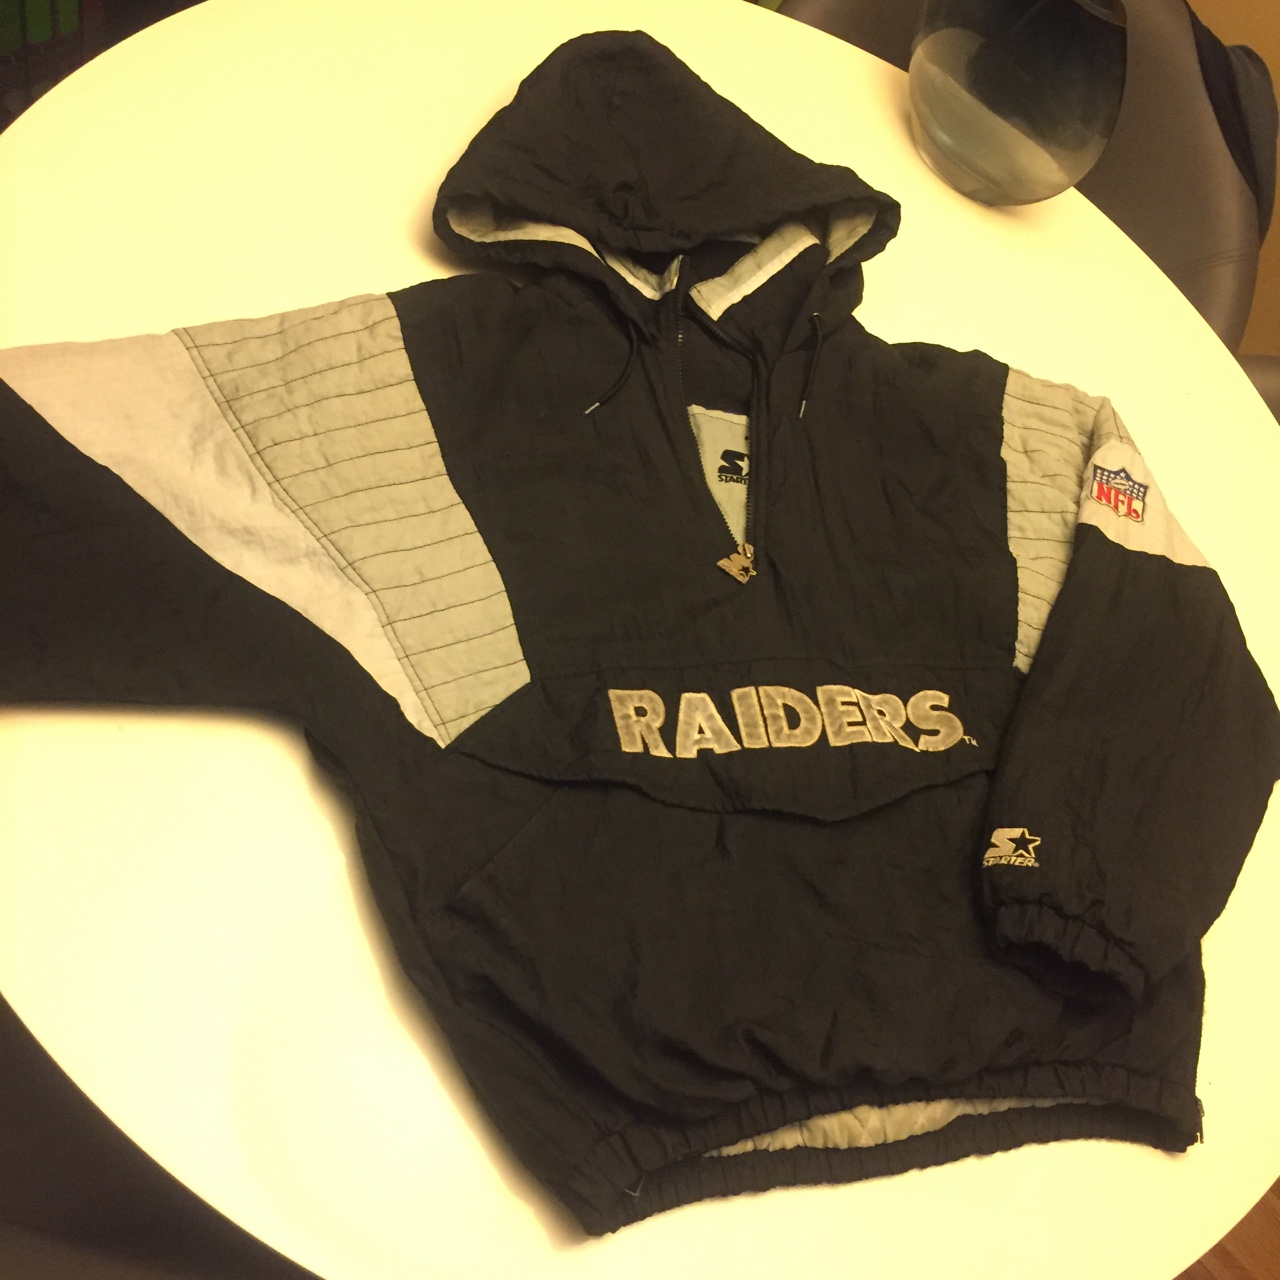 the best attitude d04f4 ad19a vintage raiders (starter jacket) Black/white/grey... - Depop